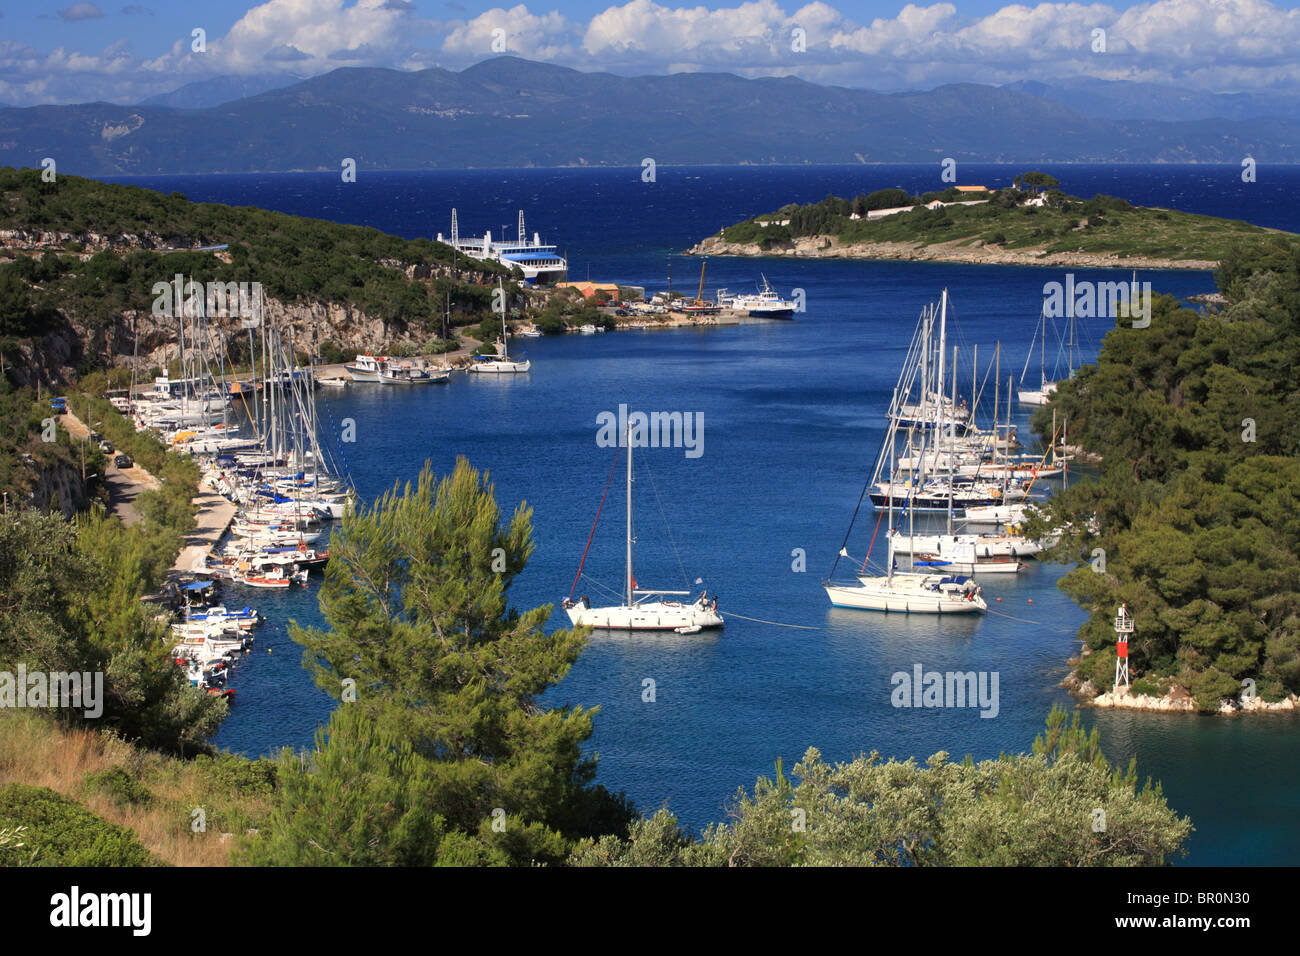 Port of Gaios, Paxos Greece, Sailing boats charter, self hire. Stock Photo